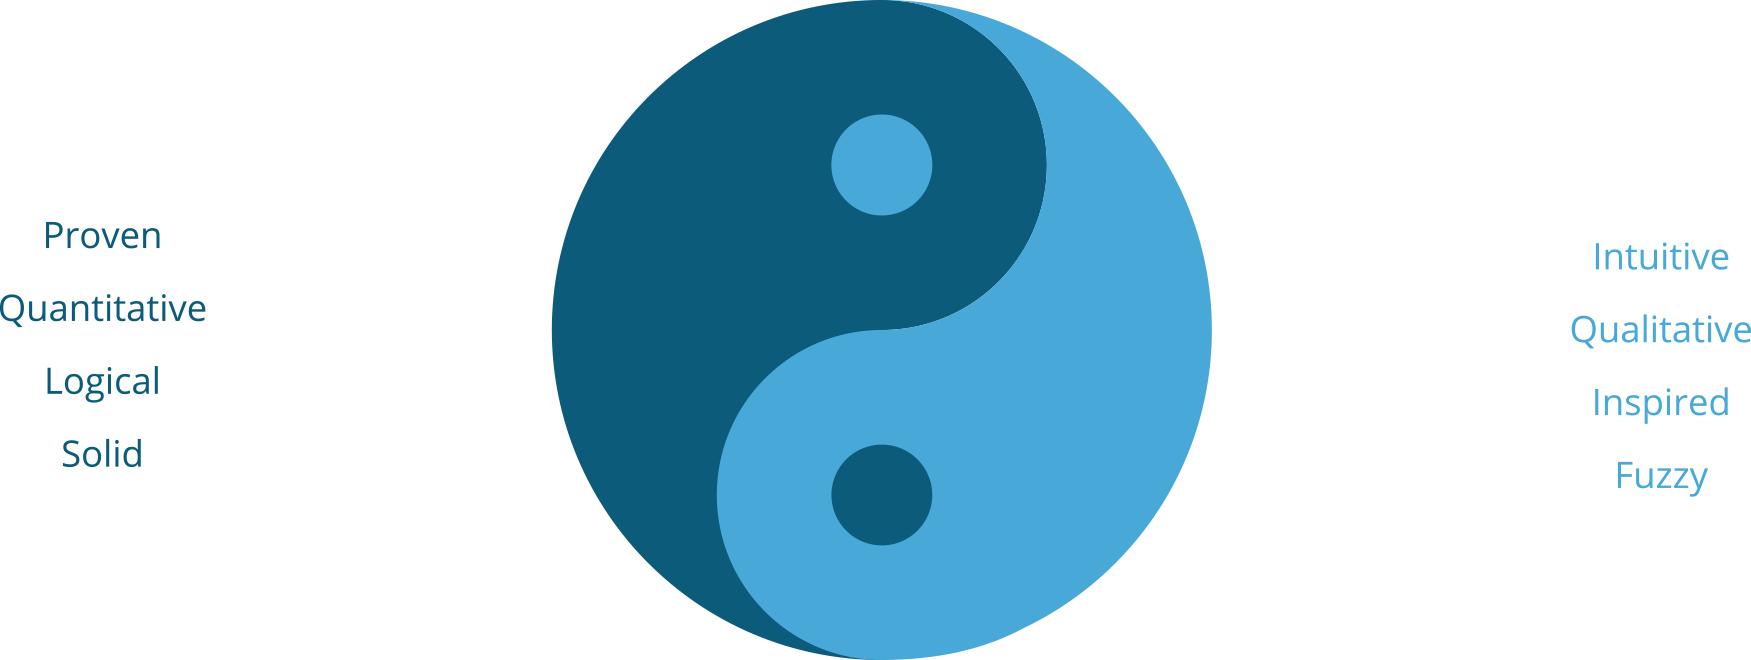 Yin and yang of marketing